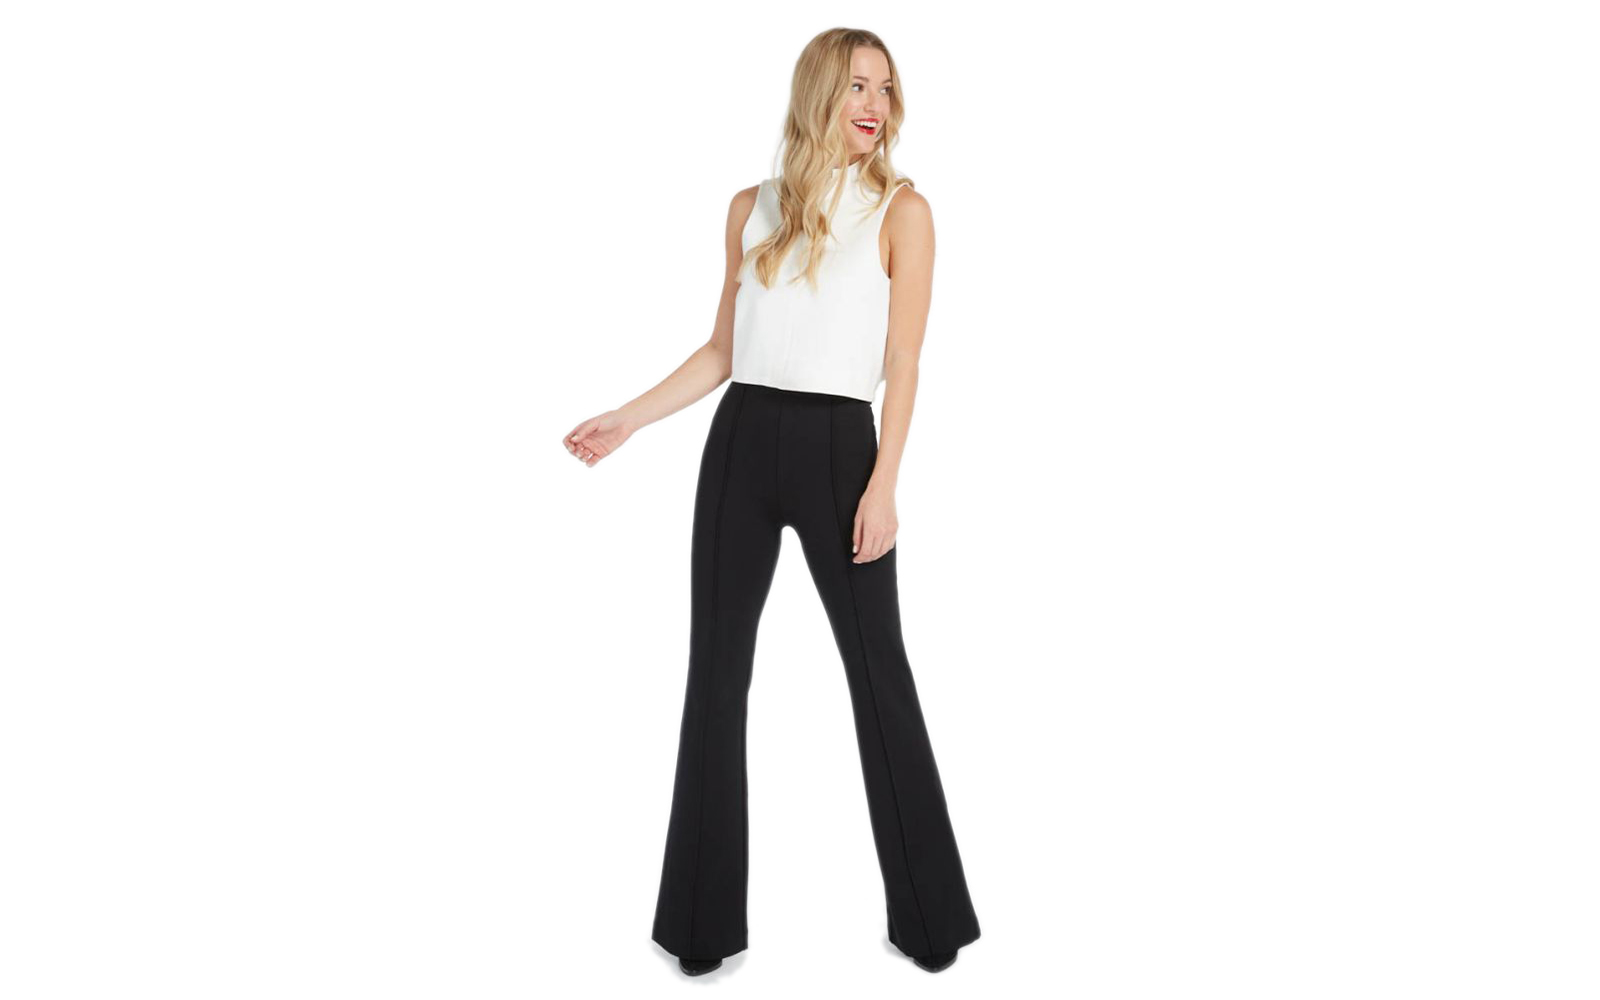 Oprah loves these comfy pants so much she called spanx's founder to thank her